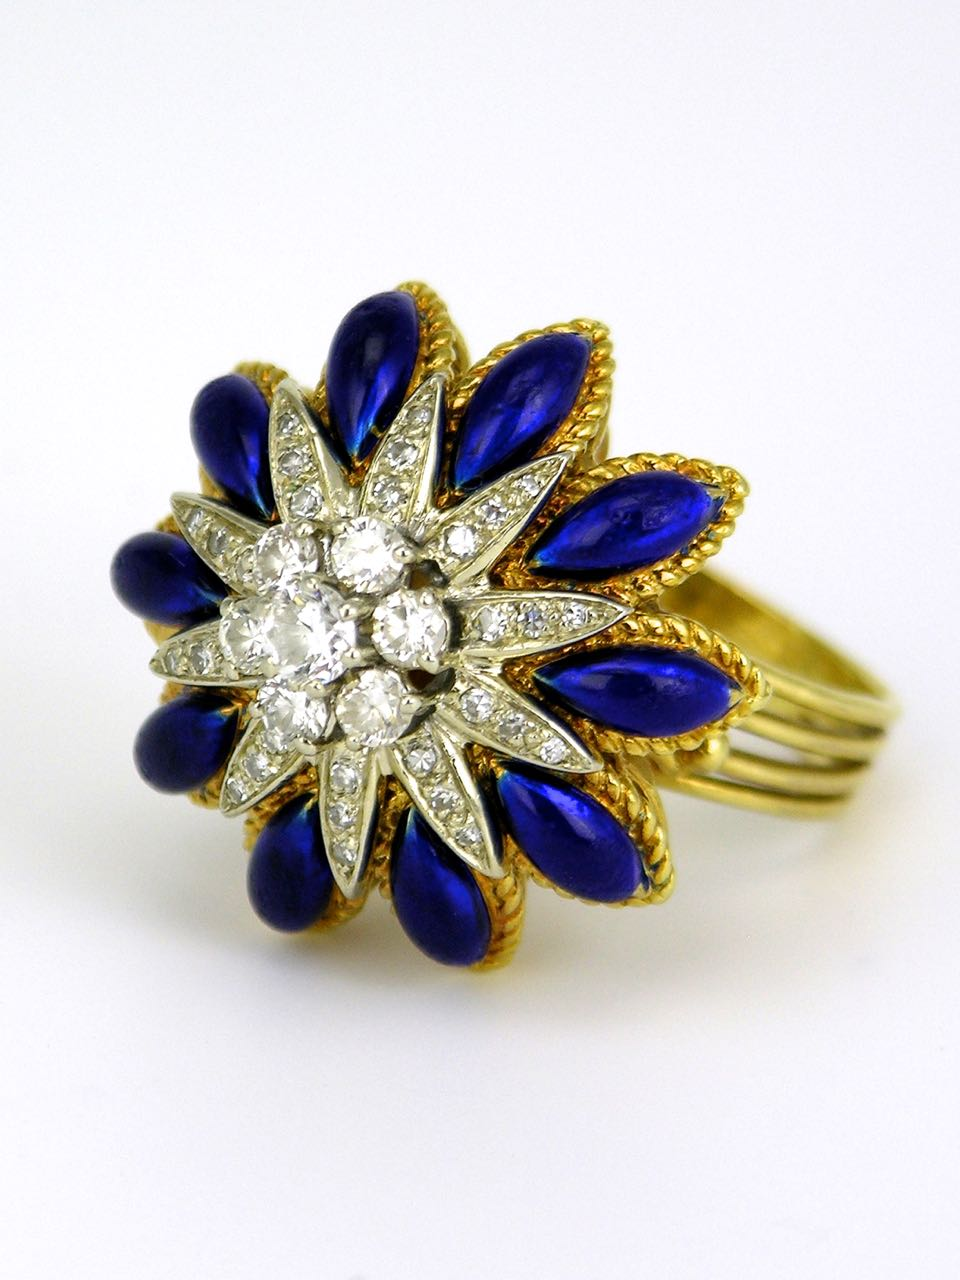 Vintage Italian 18k Yellow Gold Diamond Blue Enamel Flower Starburst Ring 1960s - Corletto